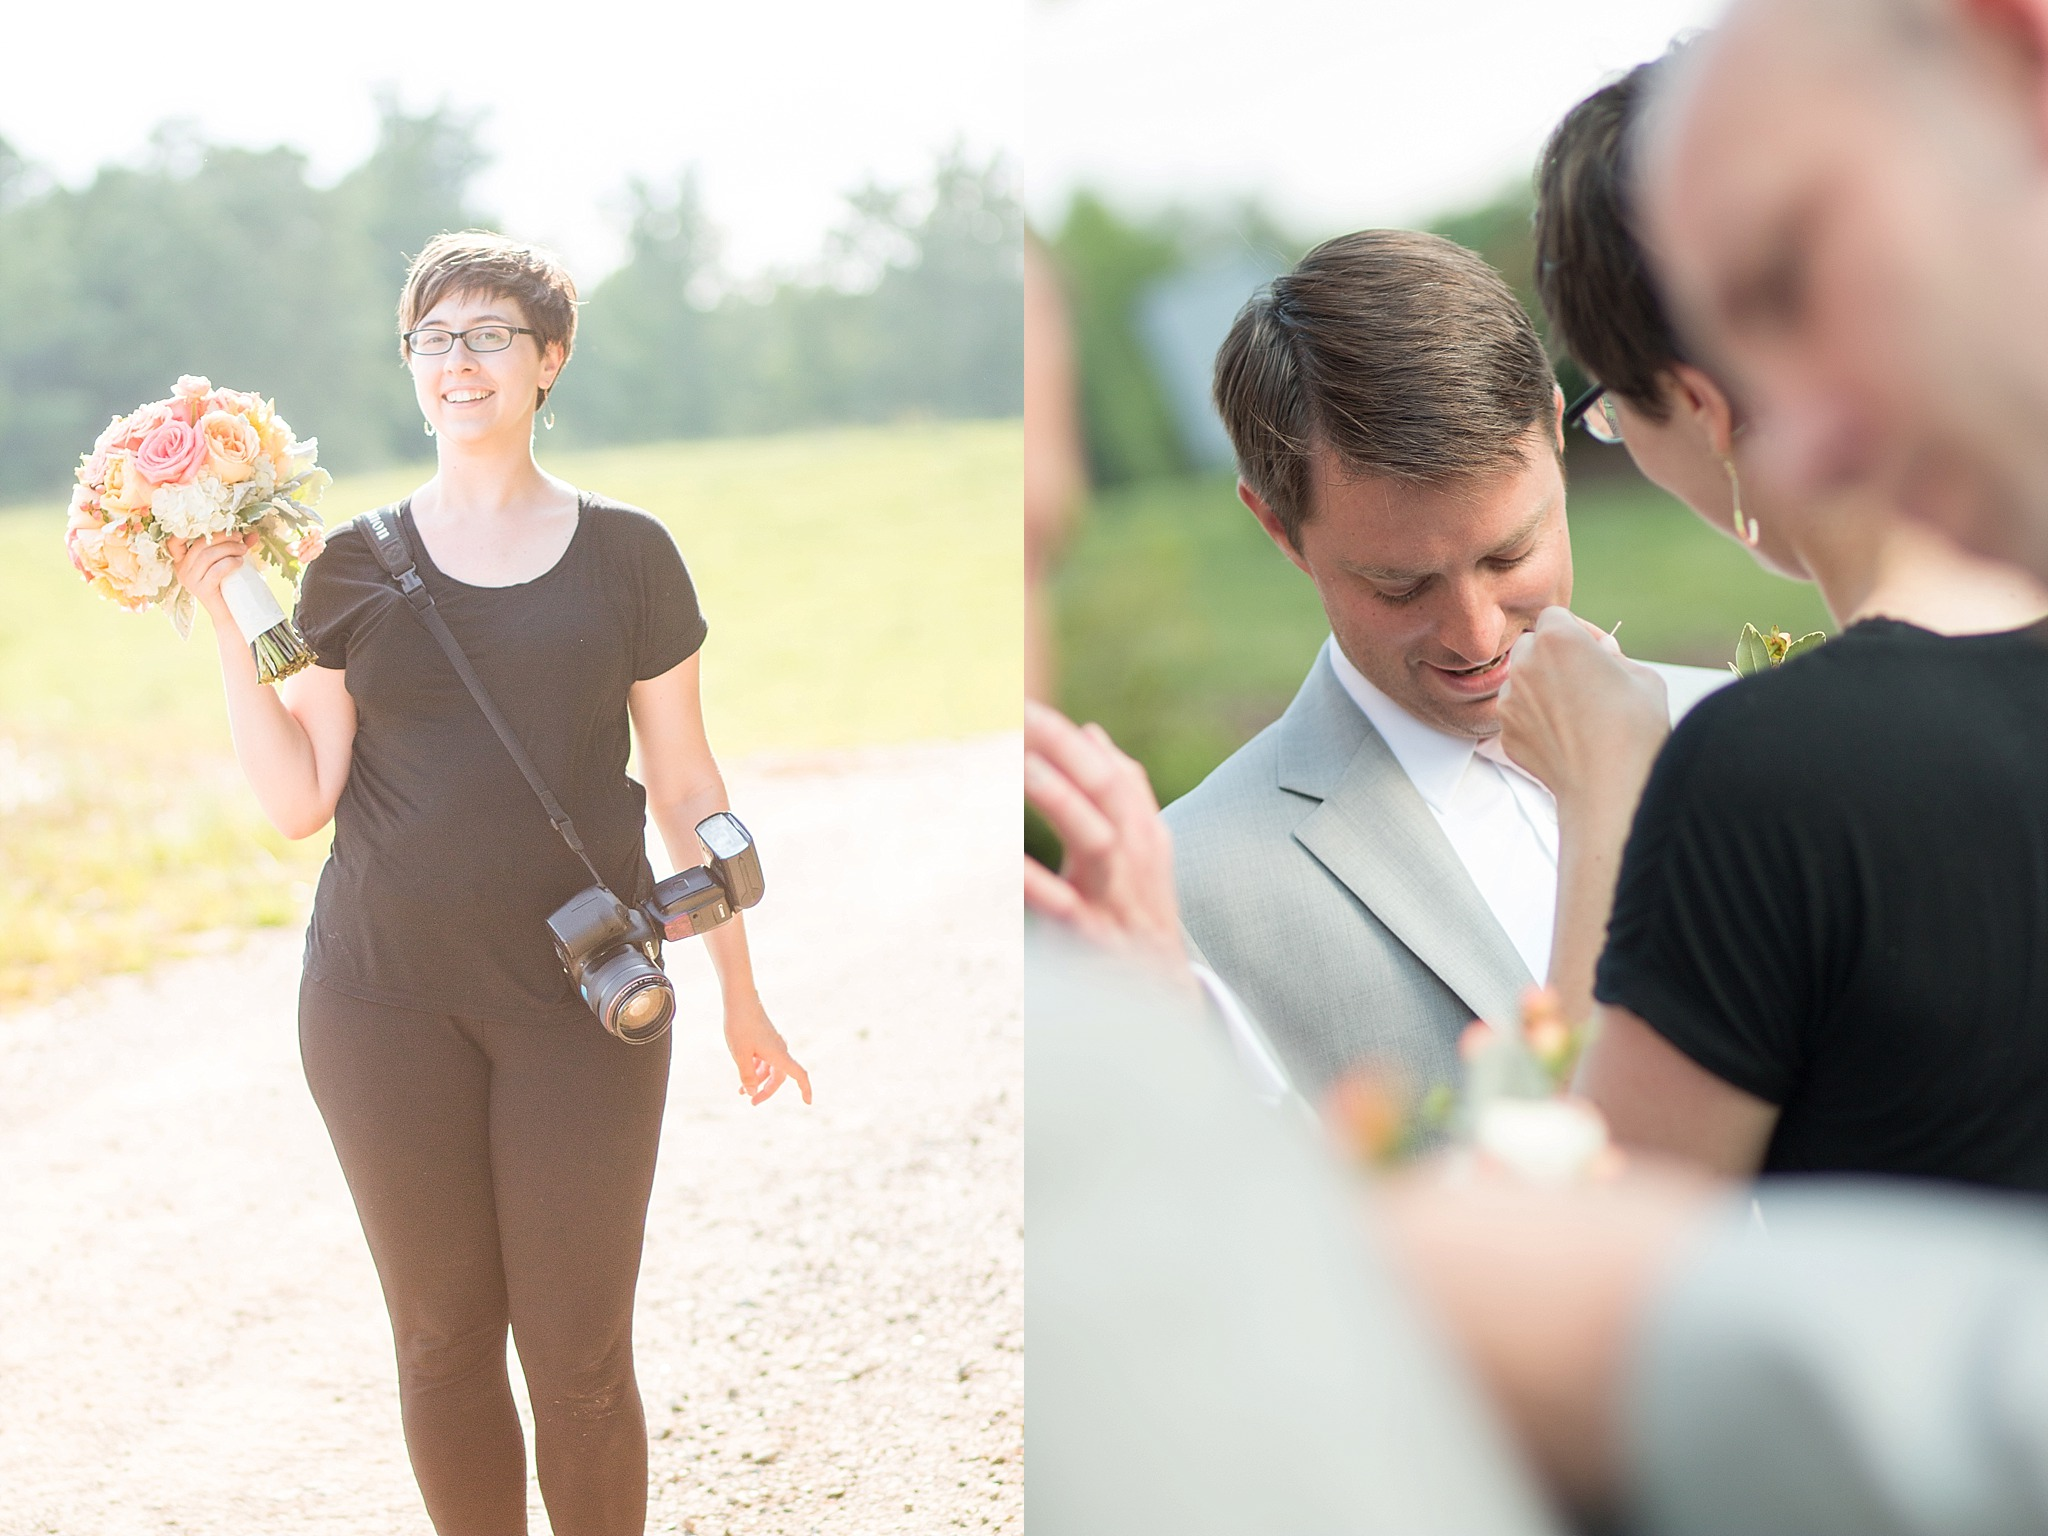 My wedding photography services extend to bouquet carrying, and boutonniere pinning. Critical skills, people!